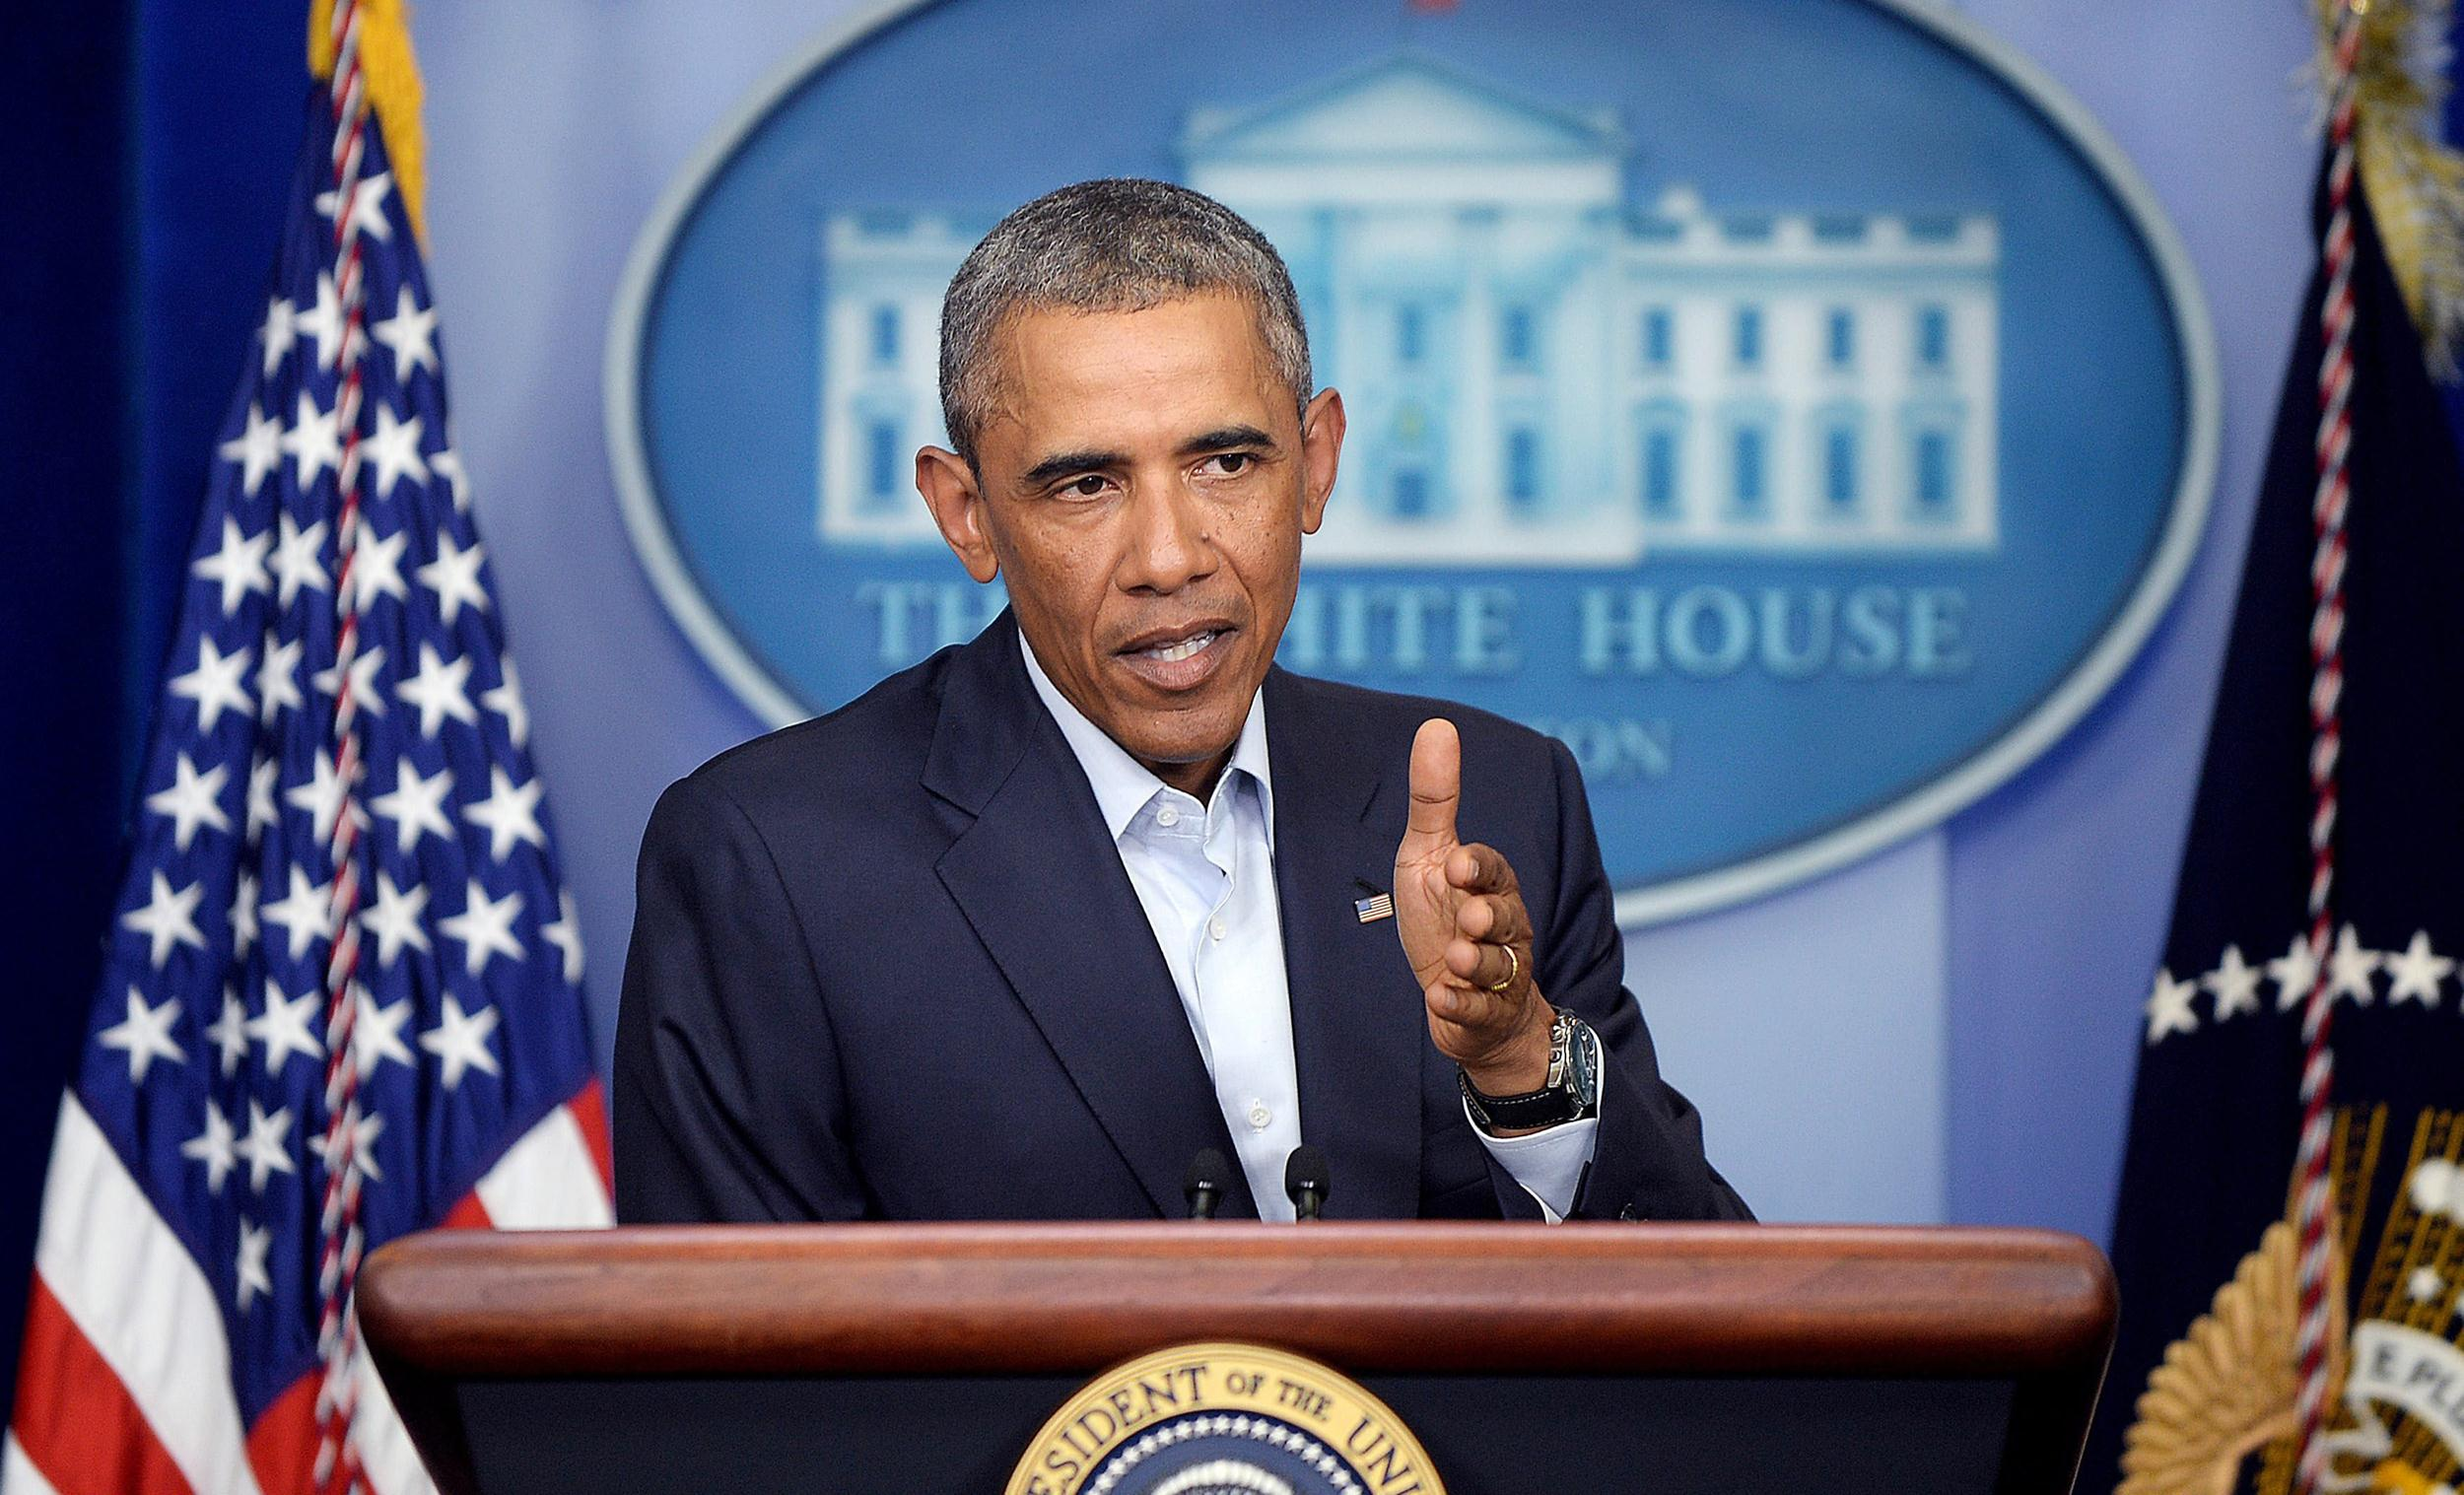 Image: President Obama delivers a statement to provide an update on Iraq and the situation in Ferguson, Missouri - DC